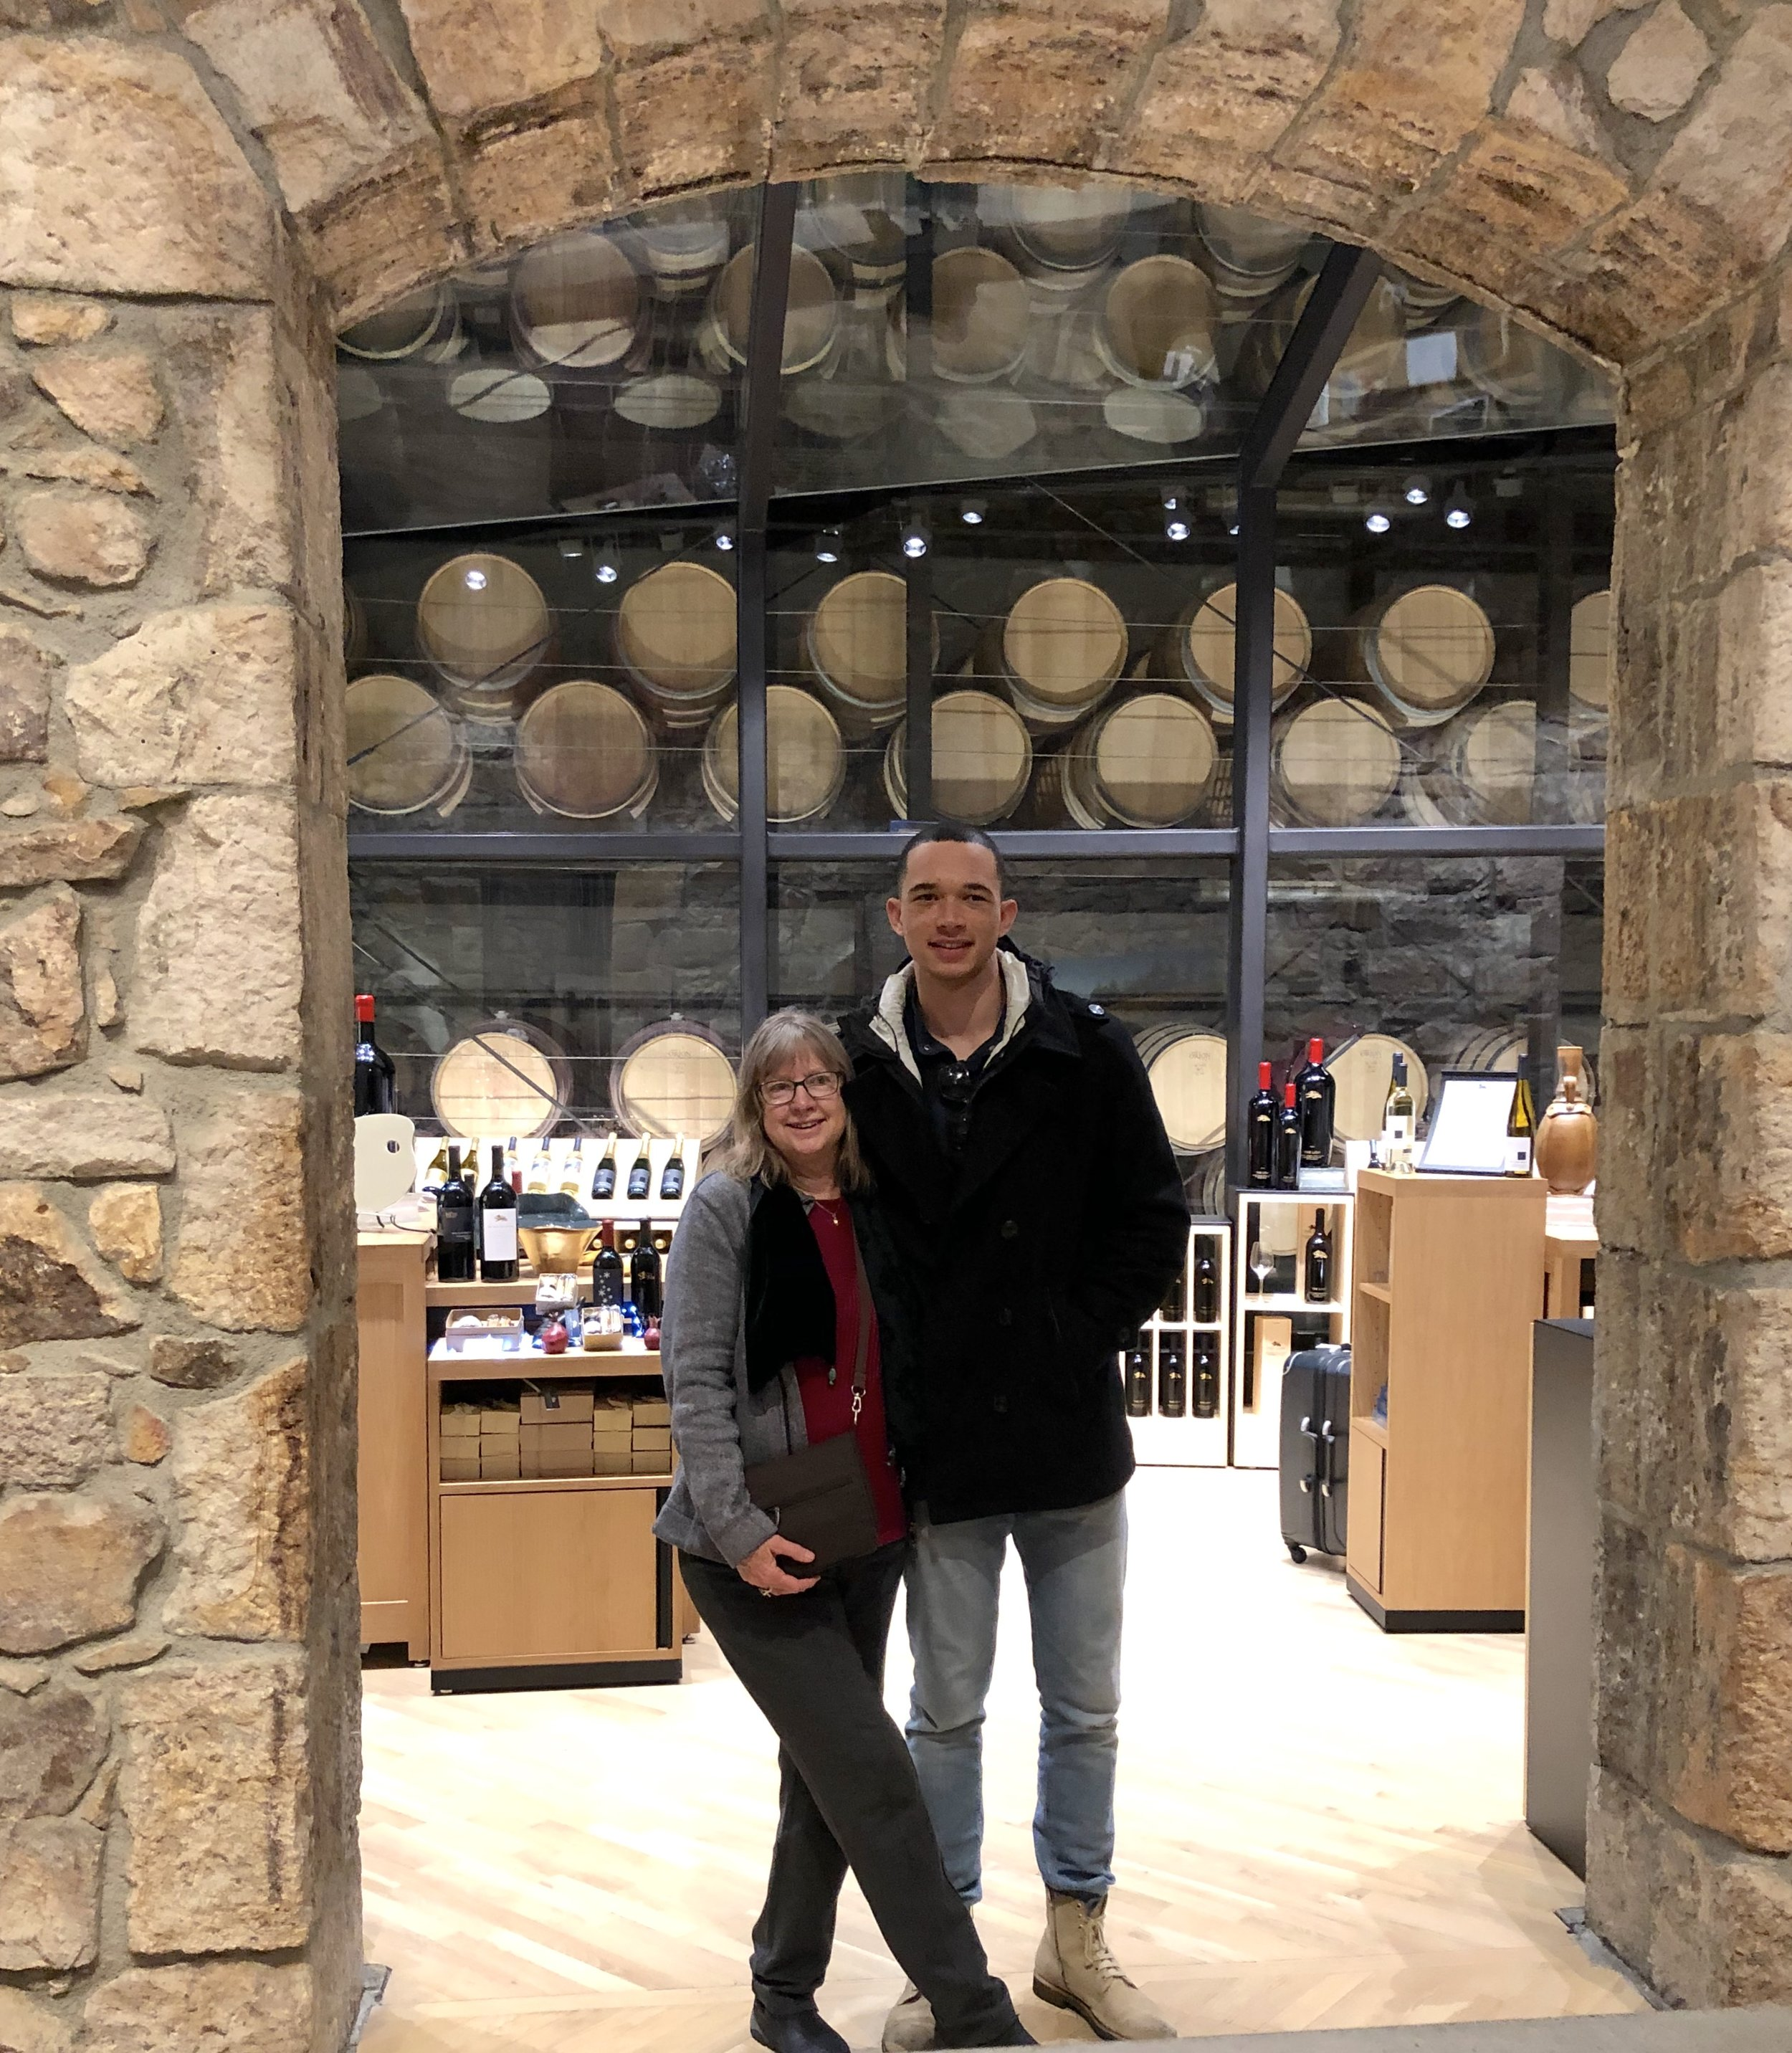 Karen and son, Andre, Napa CA 2018